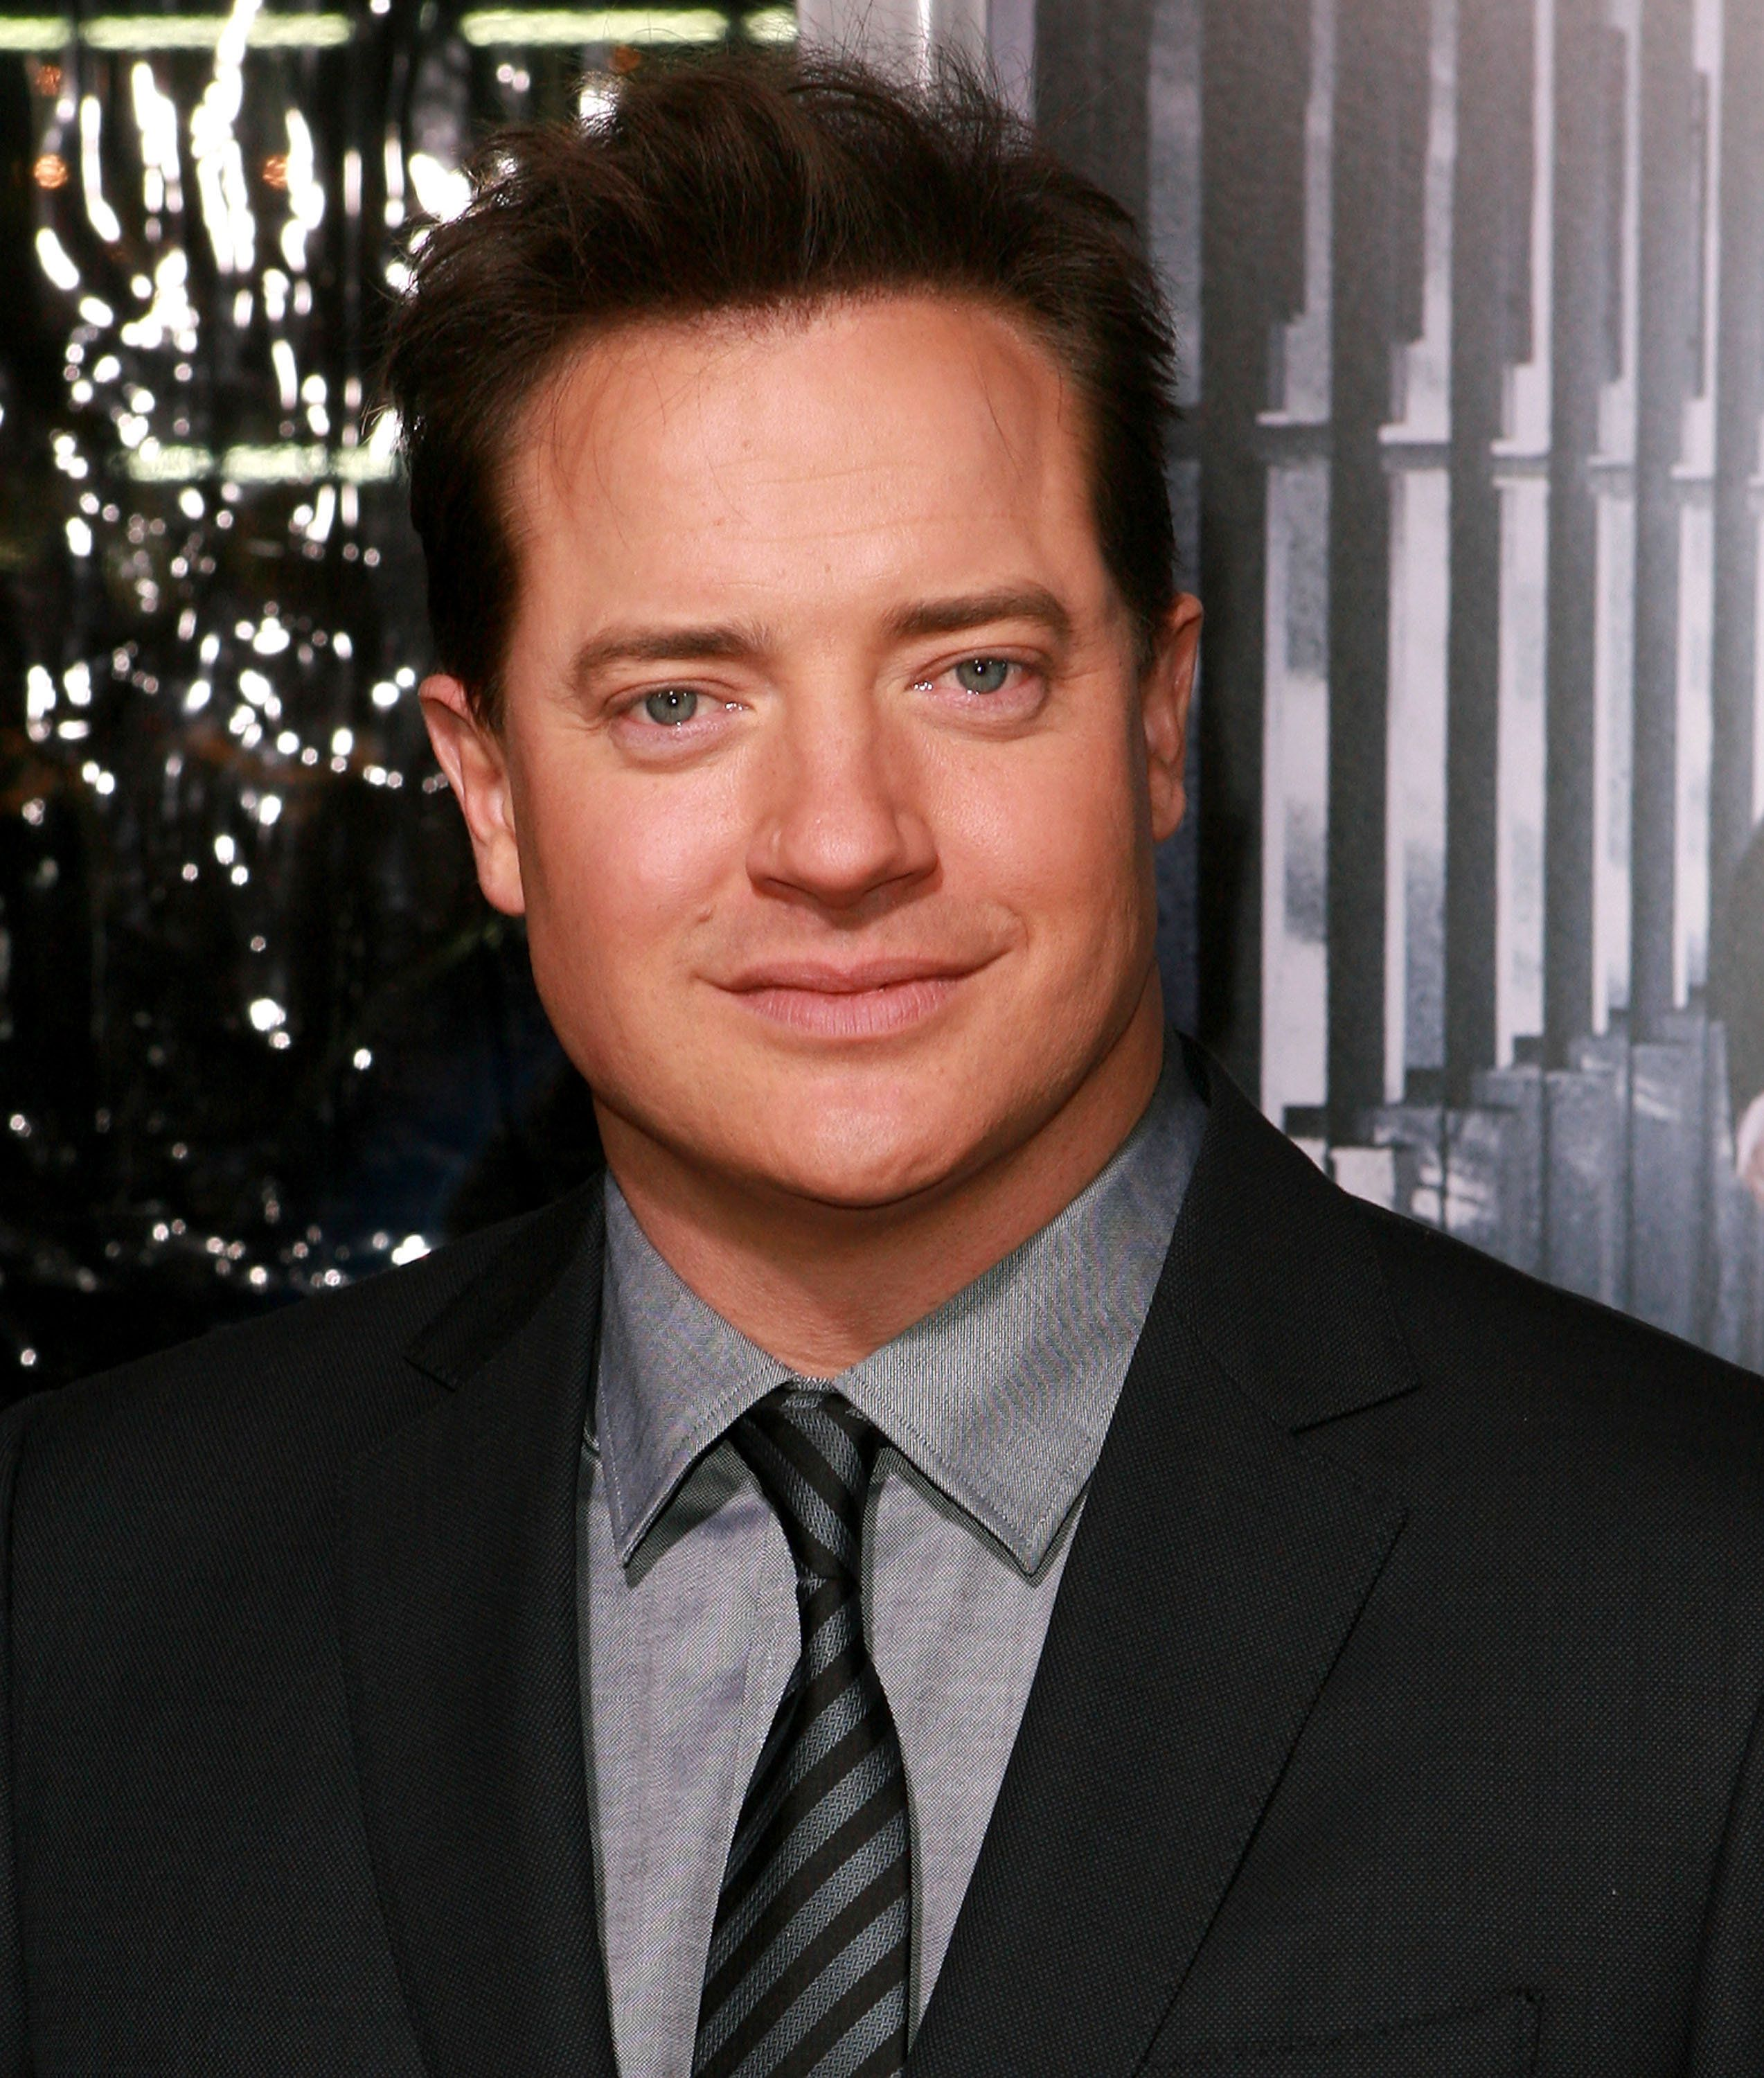 HOLLYWOOD - JANUARY 19:  Actor Brendan Fraser arrives to the 'Extraordinary Measures' Los Angeles Premiere at Grauman's Chinese Theatre on January 19, 2010 in Hollywood, California.  (Photo by Jesse Grant/WireImage)